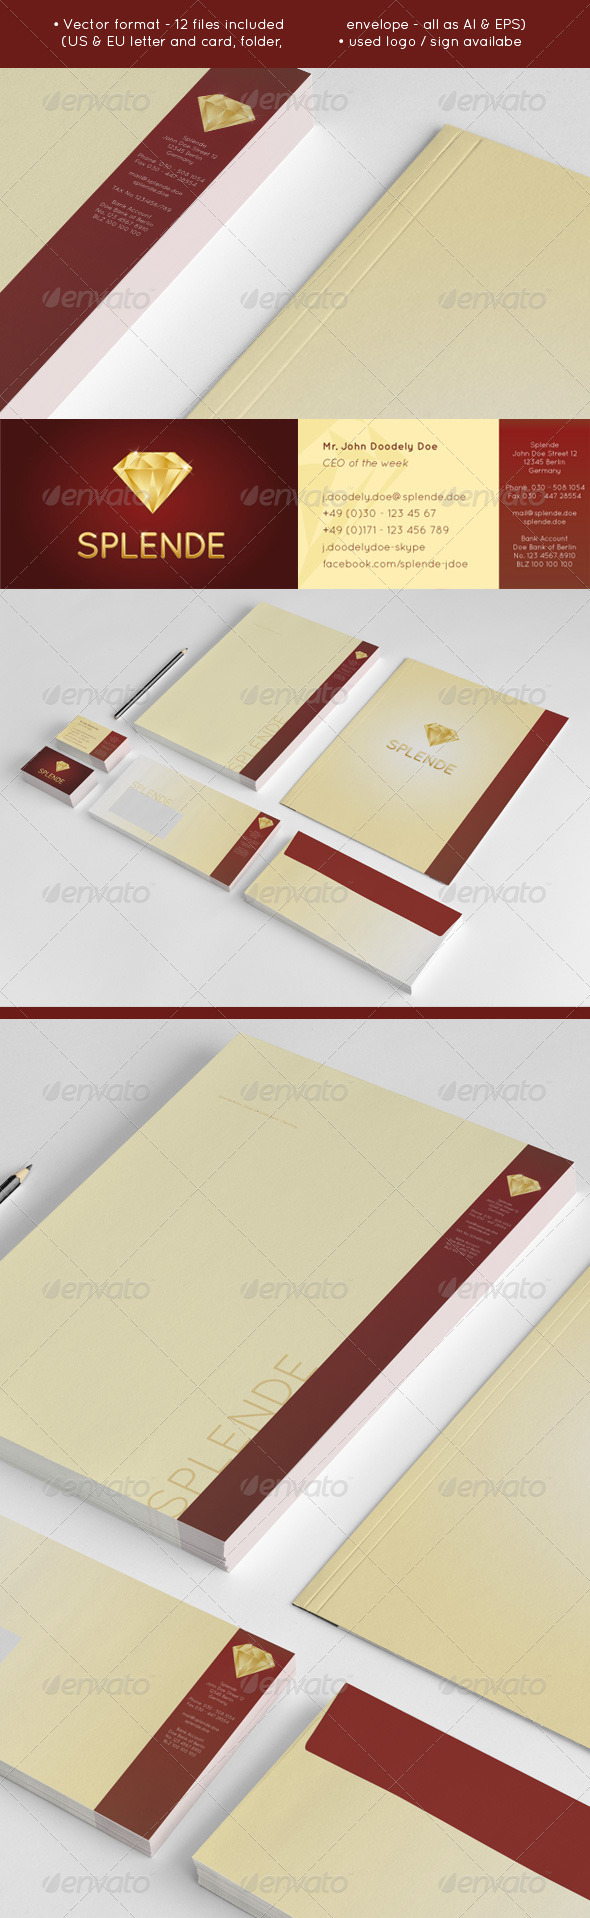 GraphicRiver Splende Golden Vector Diamond Jeweler Stationery 3769385